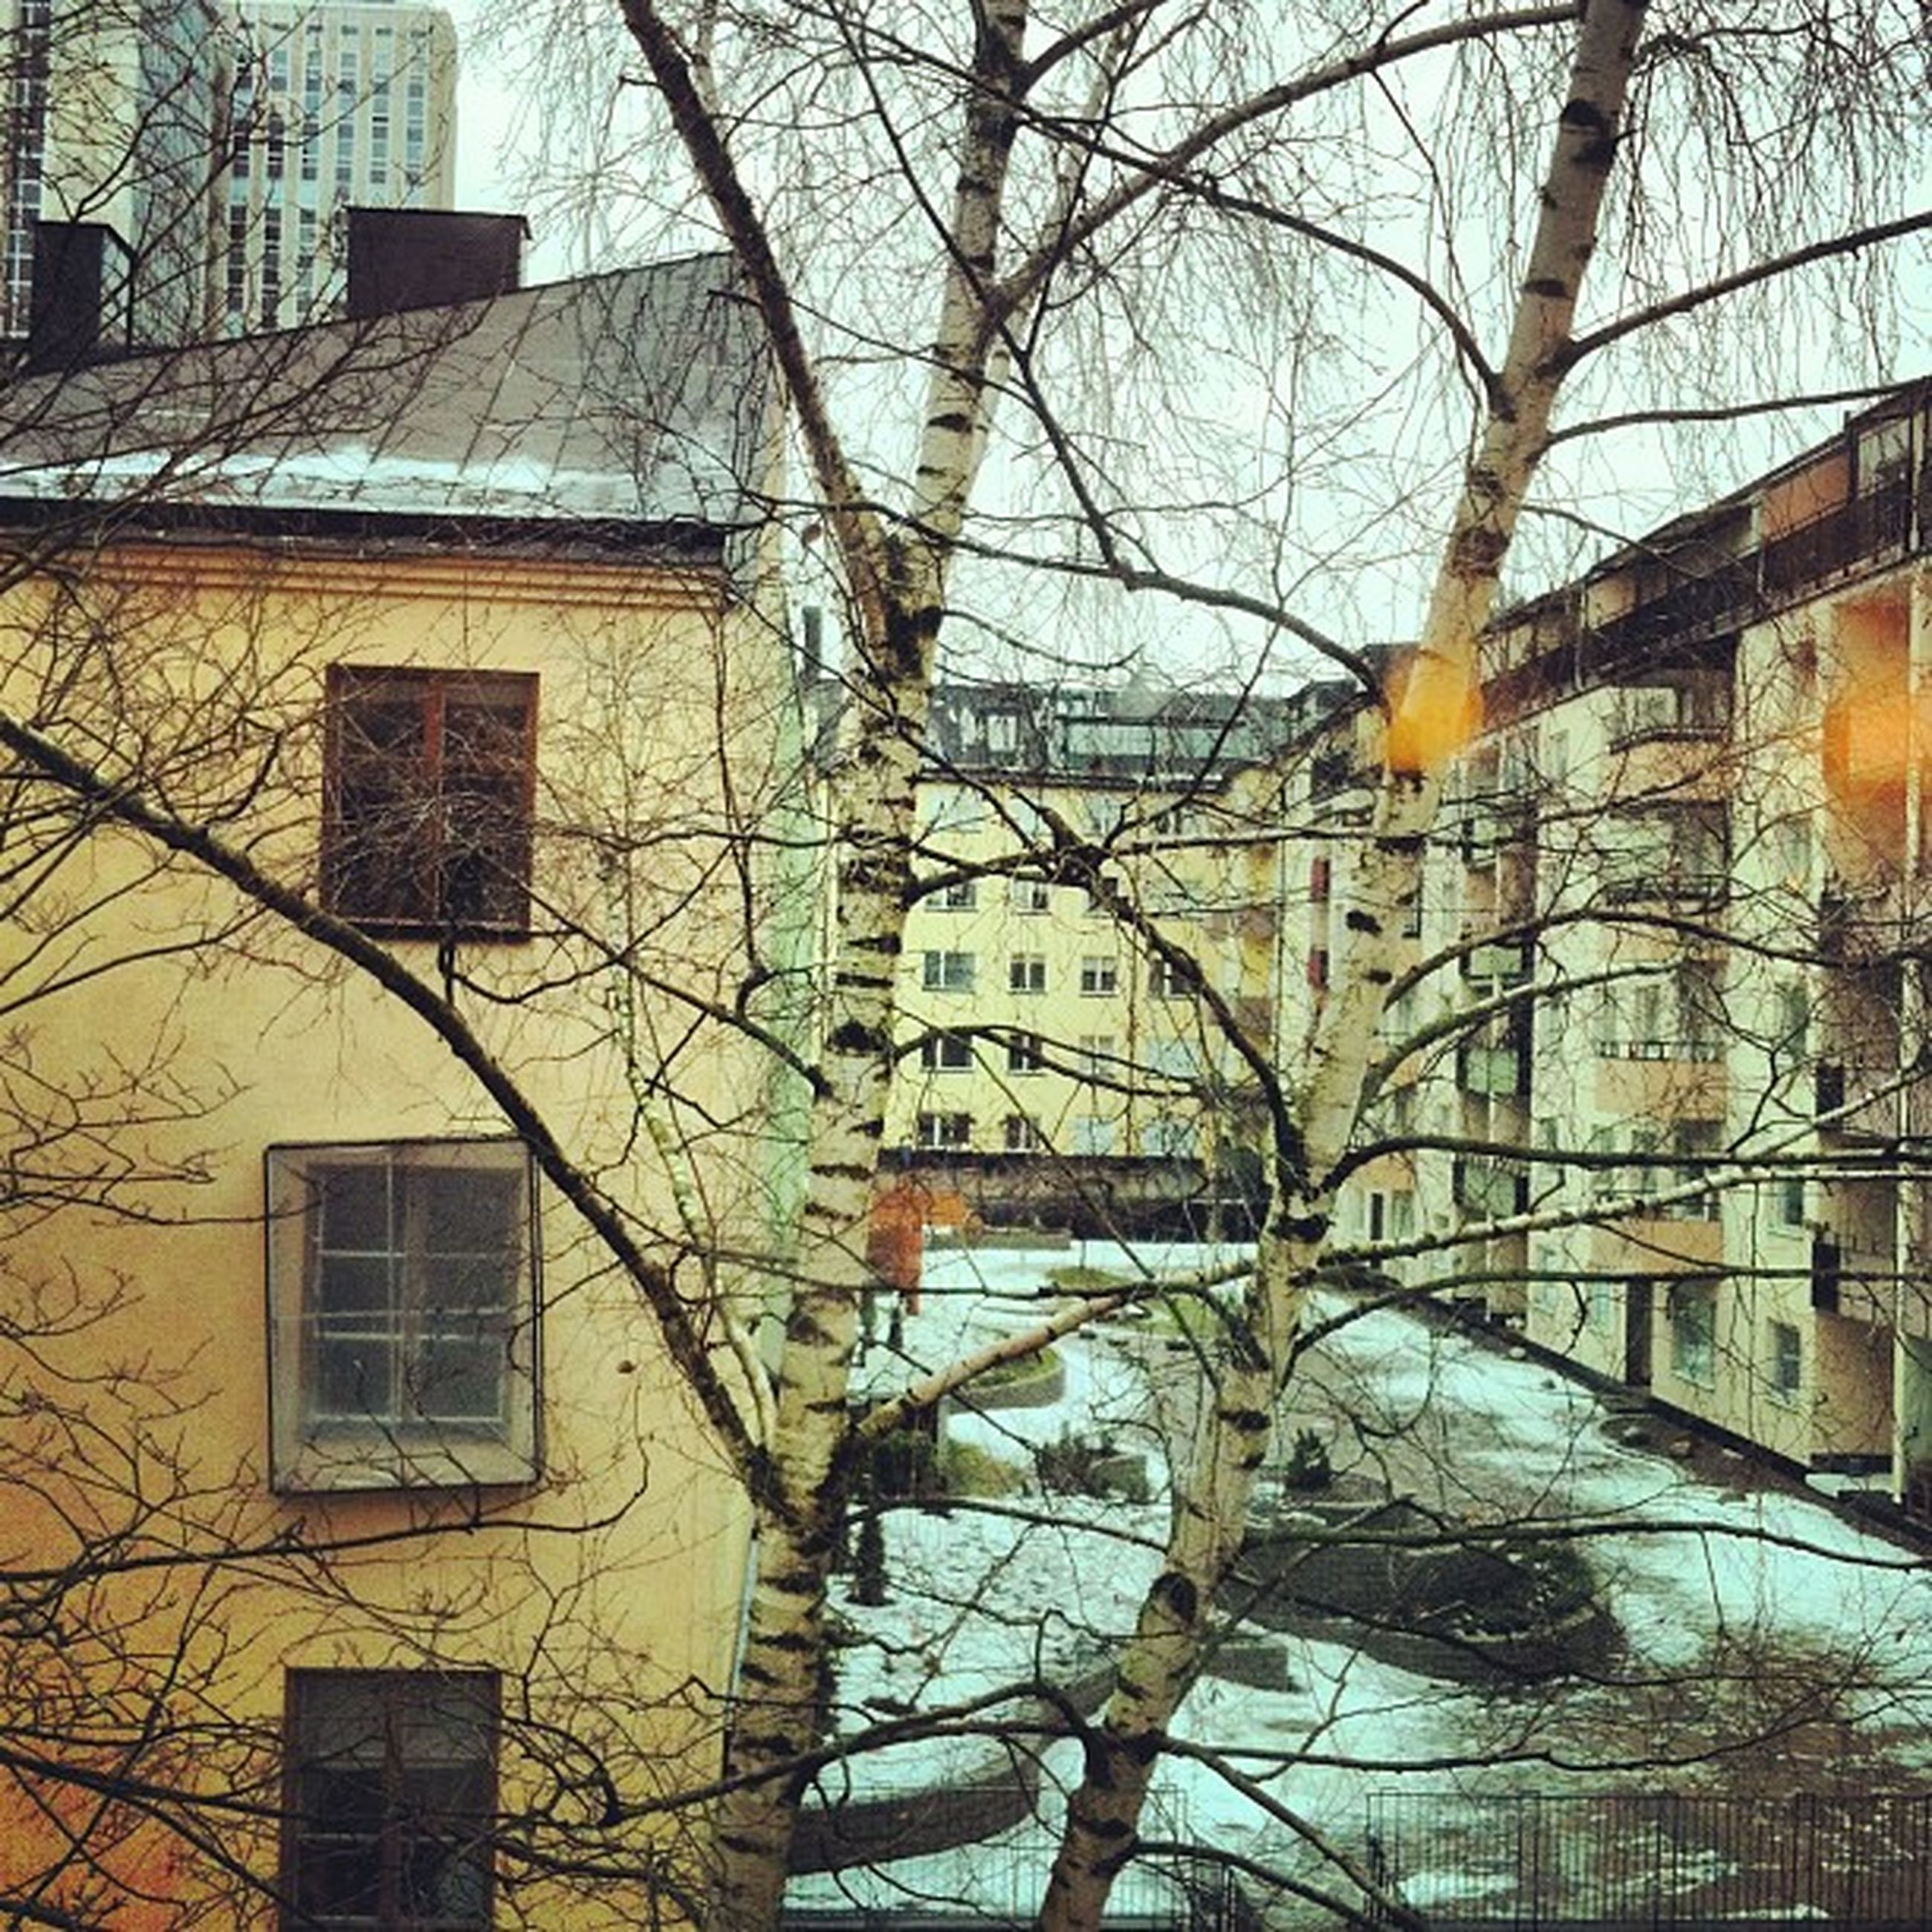 building exterior, architecture, built structure, bare tree, tree, branch, residential building, city, building, residential structure, window, house, season, outdoors, low angle view, no people, day, winter, snow, cold temperature